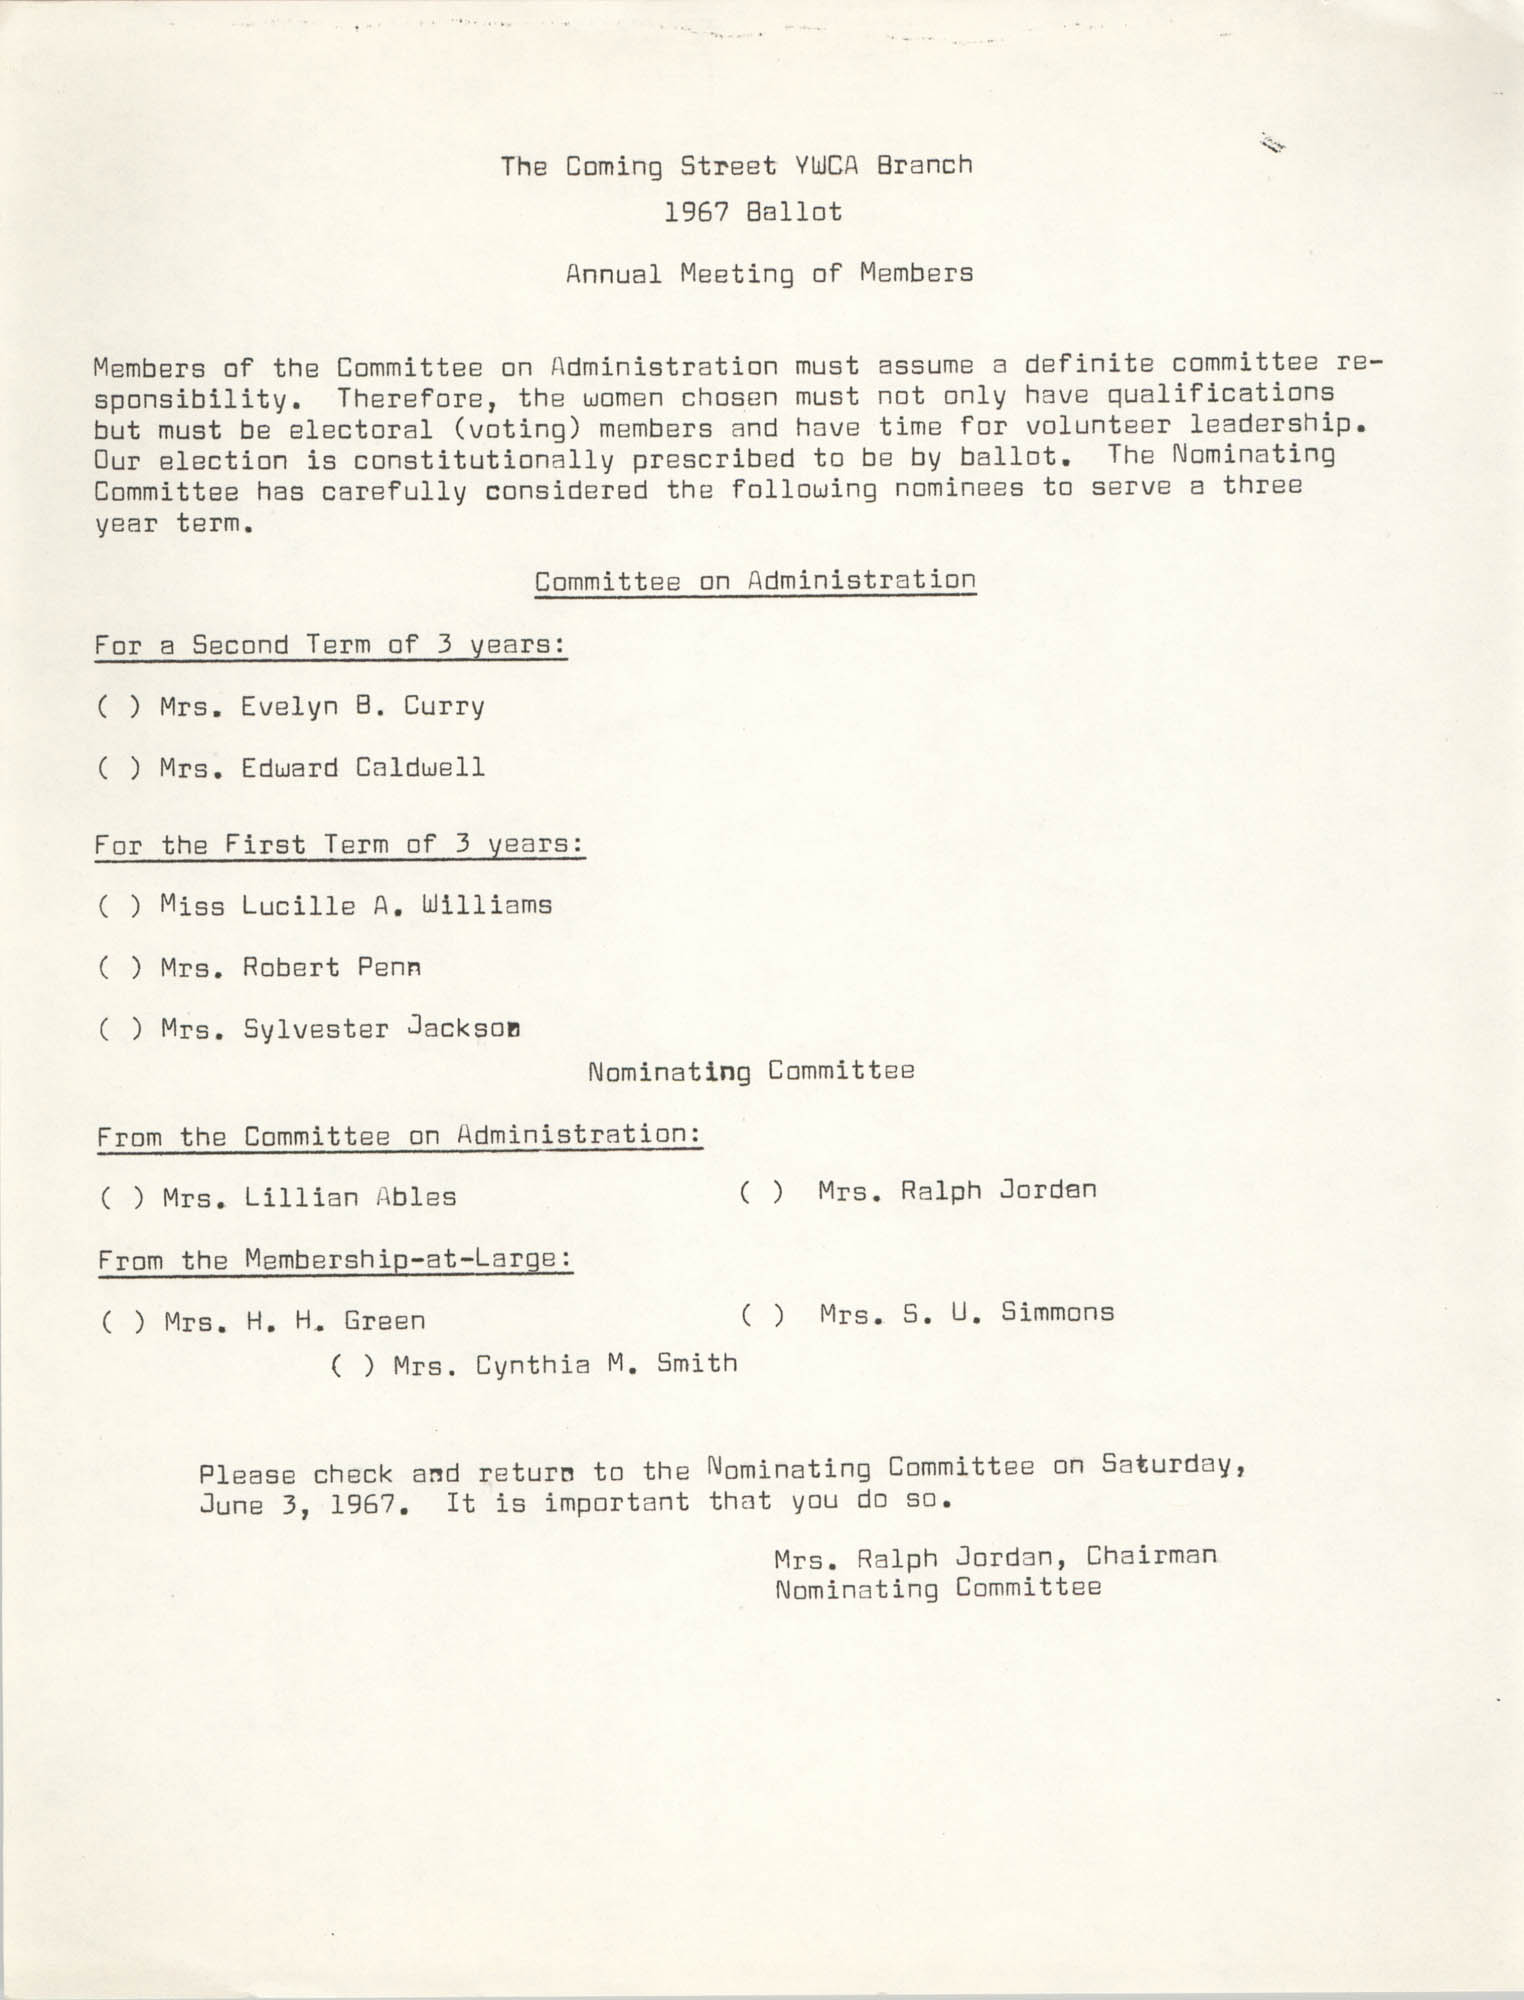 Coming Street Y.W.C.A. Ballot for 1967